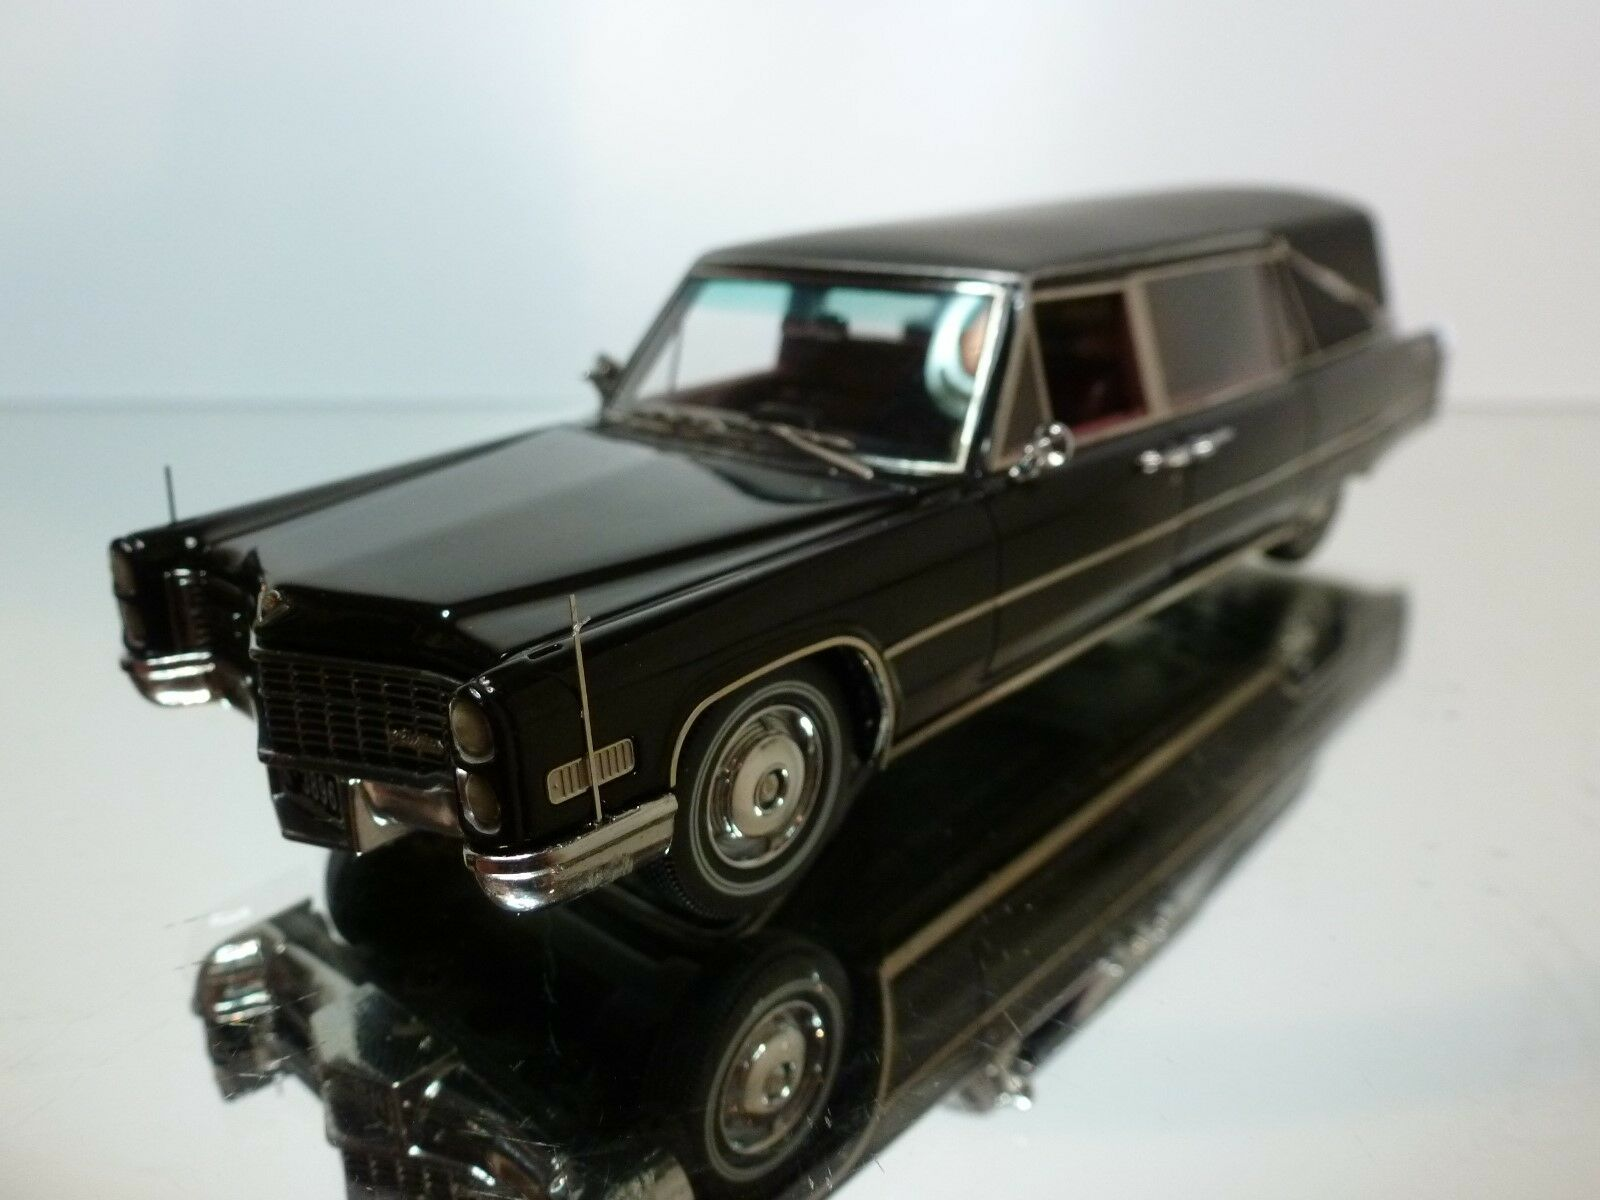 NEO SCALE MODELS 1 43 - S & S LANDAU HEARSE FUNERALCAR - EXCELLENT CONDITION 28